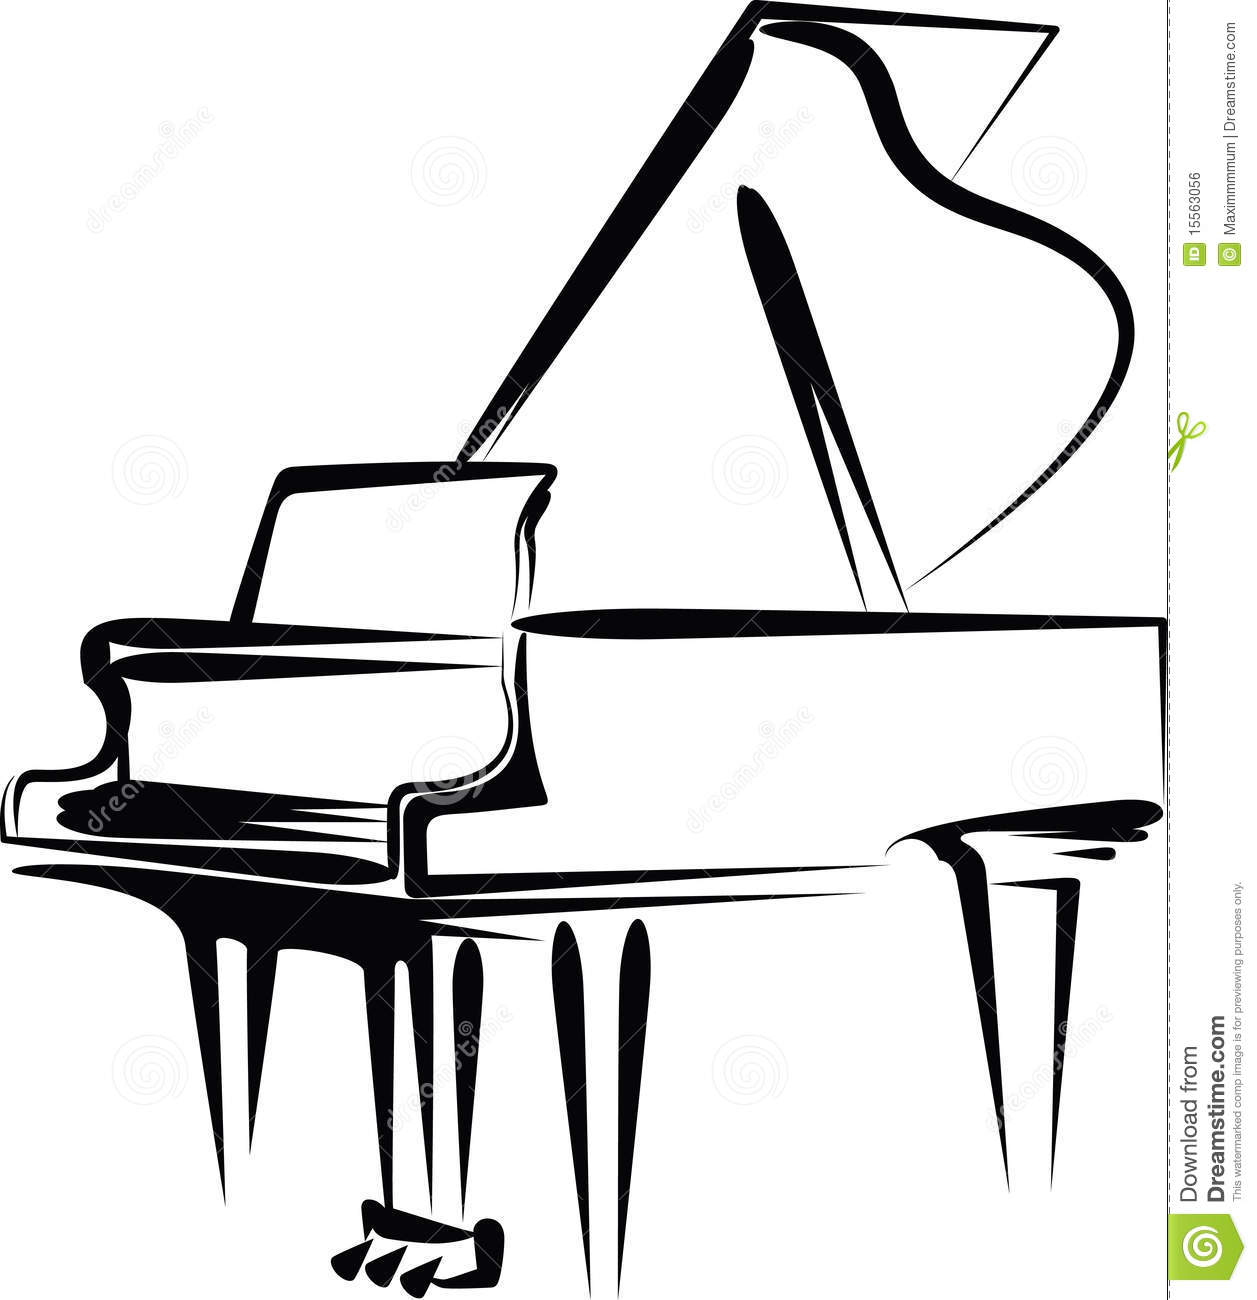 Piano stock vector. Illustration of illustration, musical